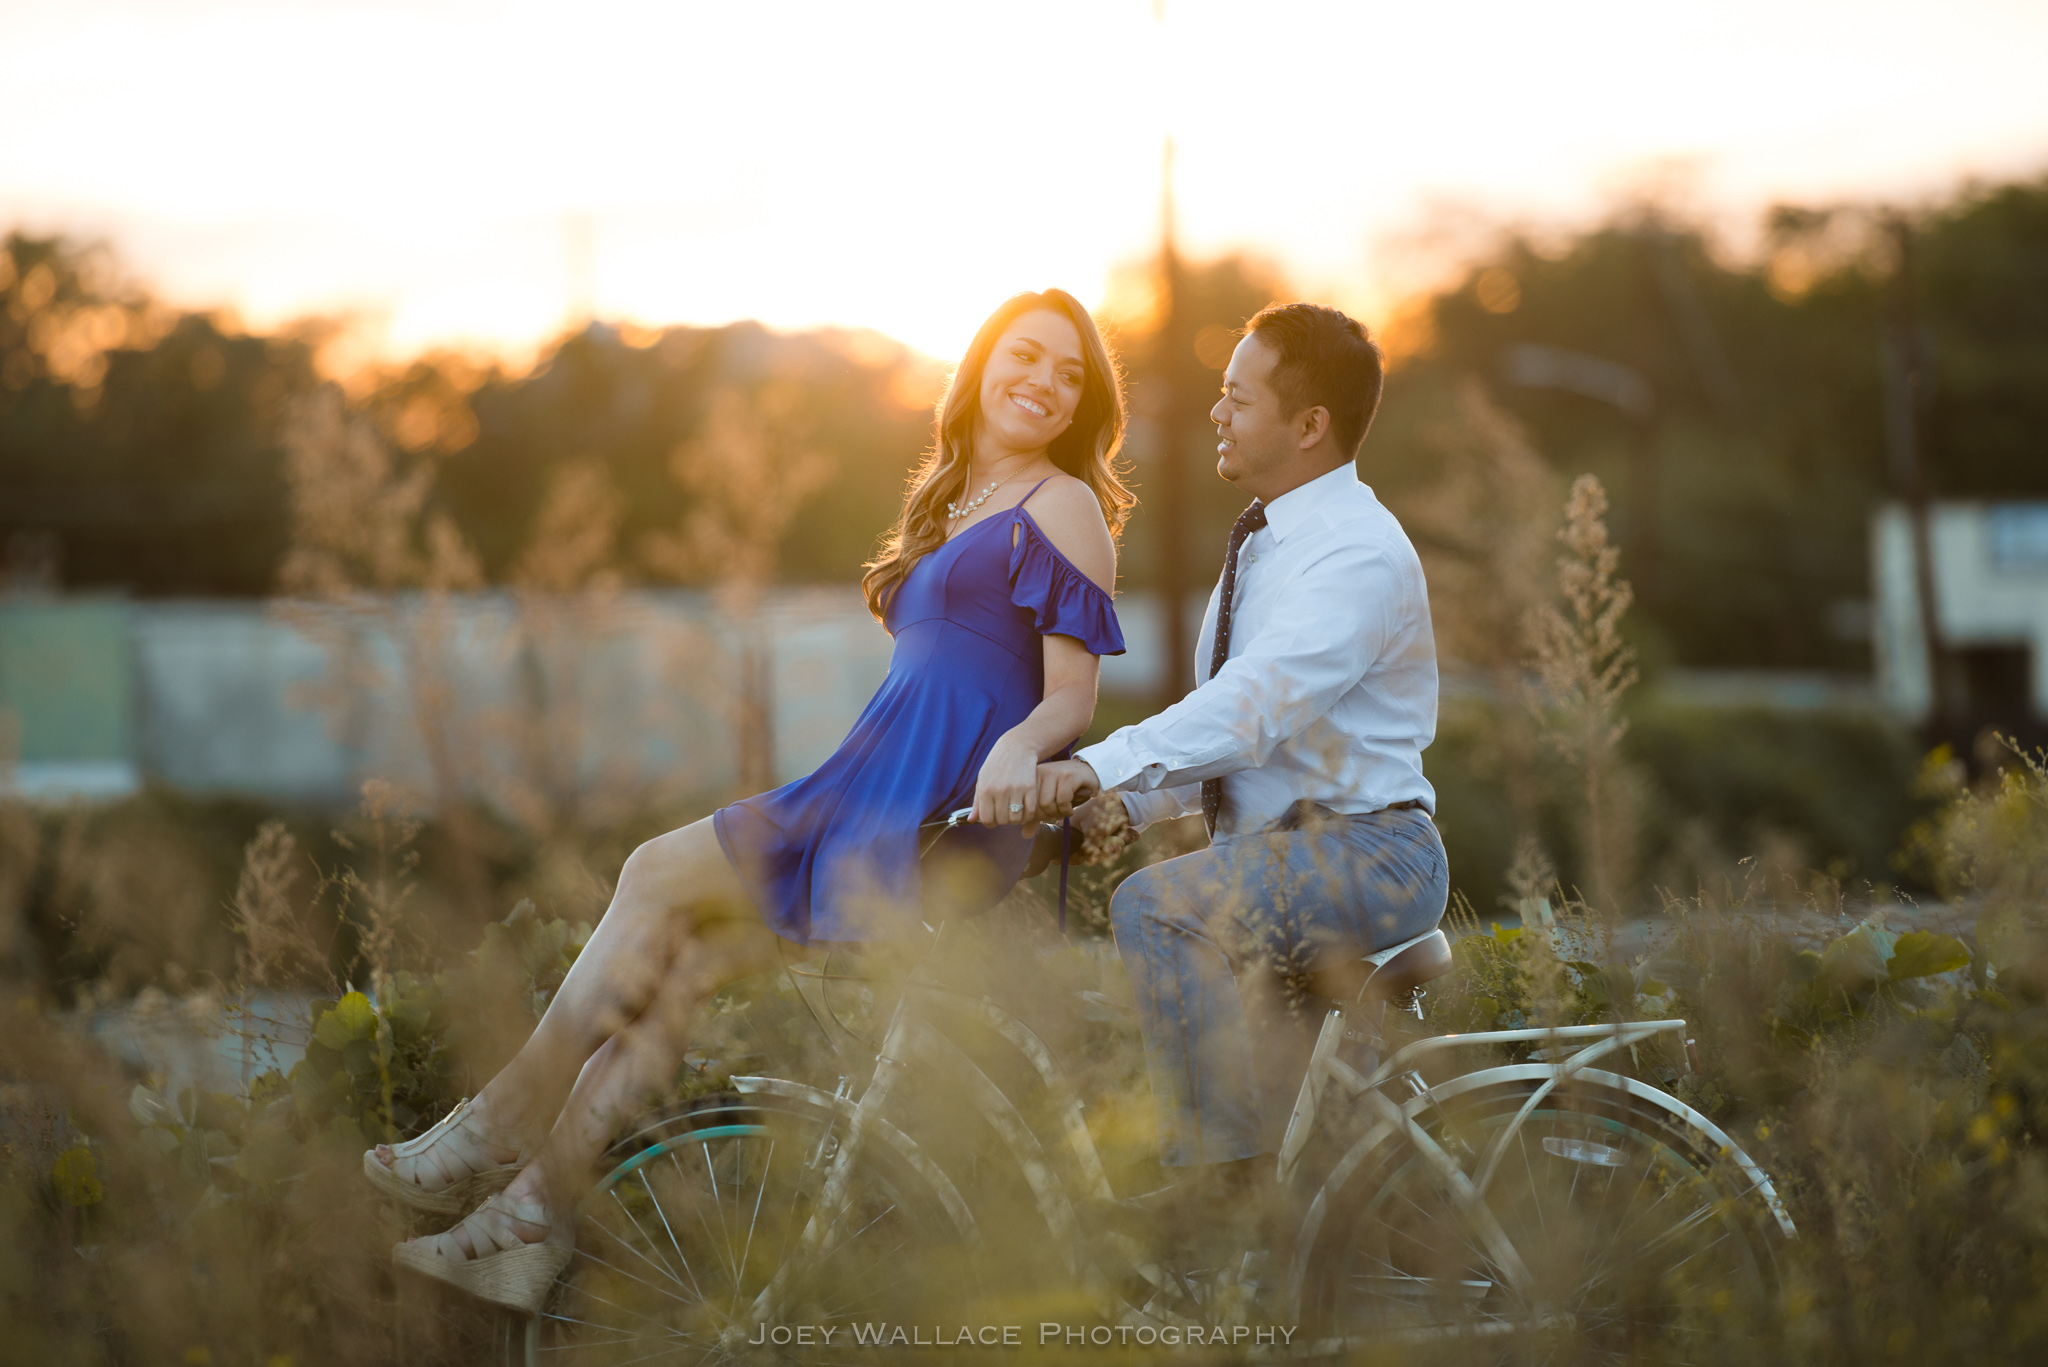 Engagement session at the goat farm in Atlanta